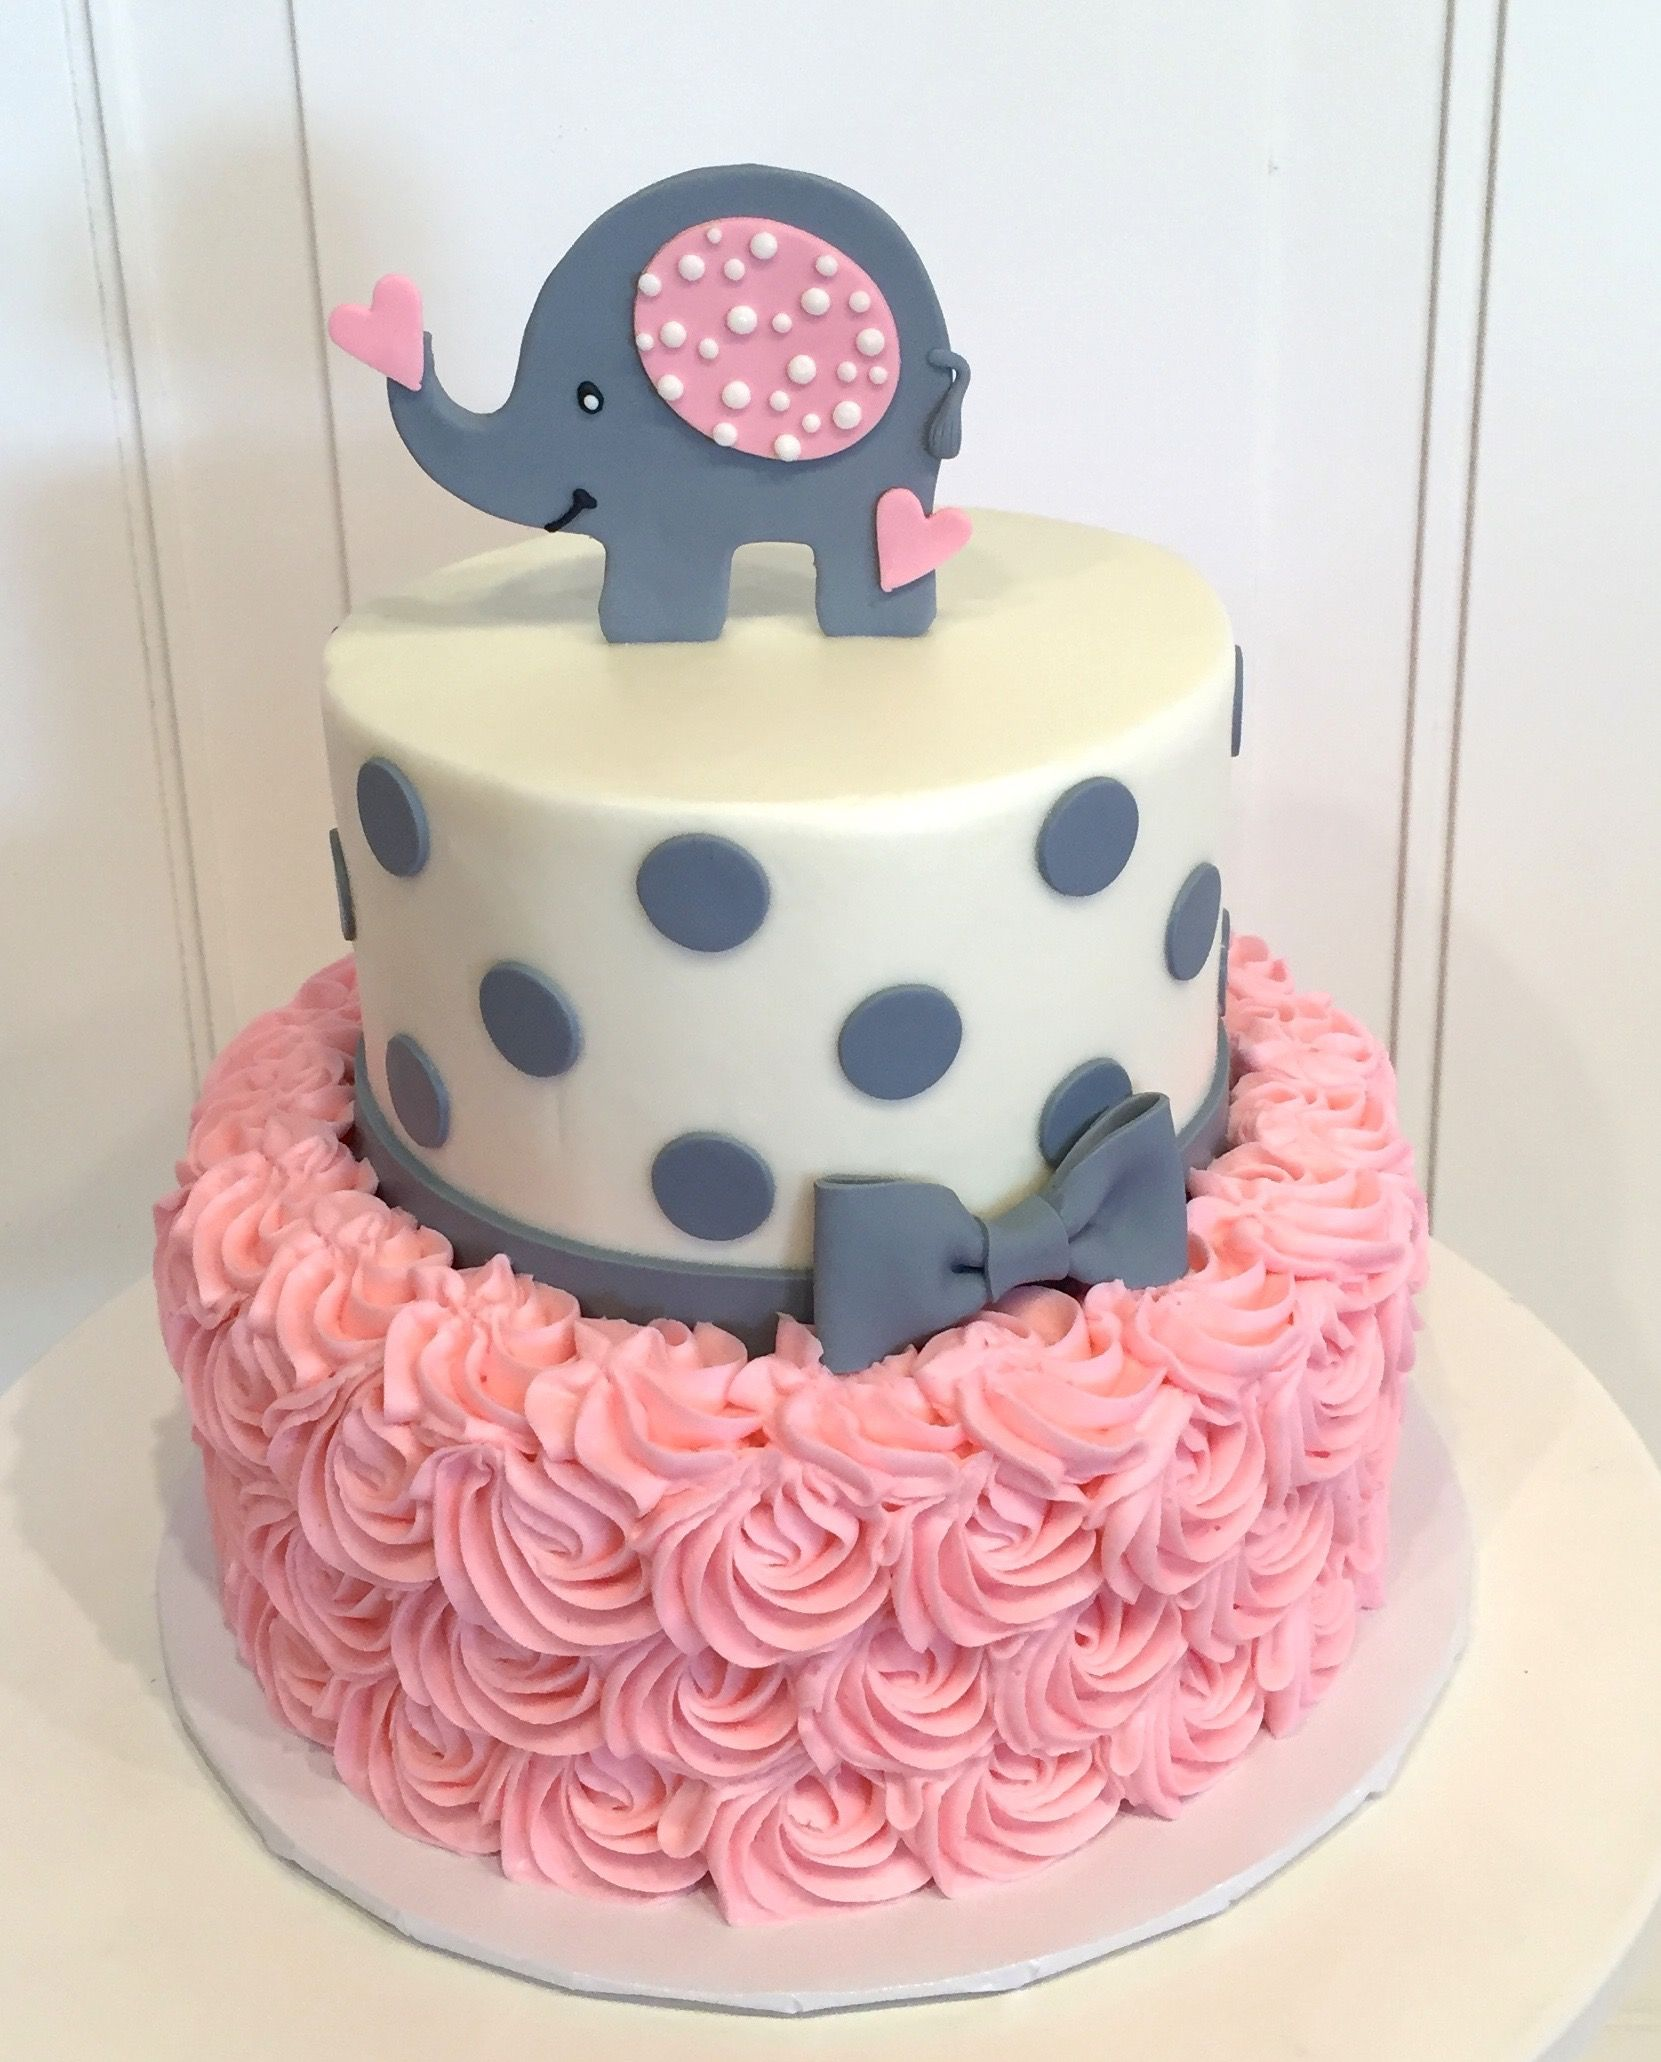 Baby Shower Cake With Elephant On Top The Cake Is A Pink